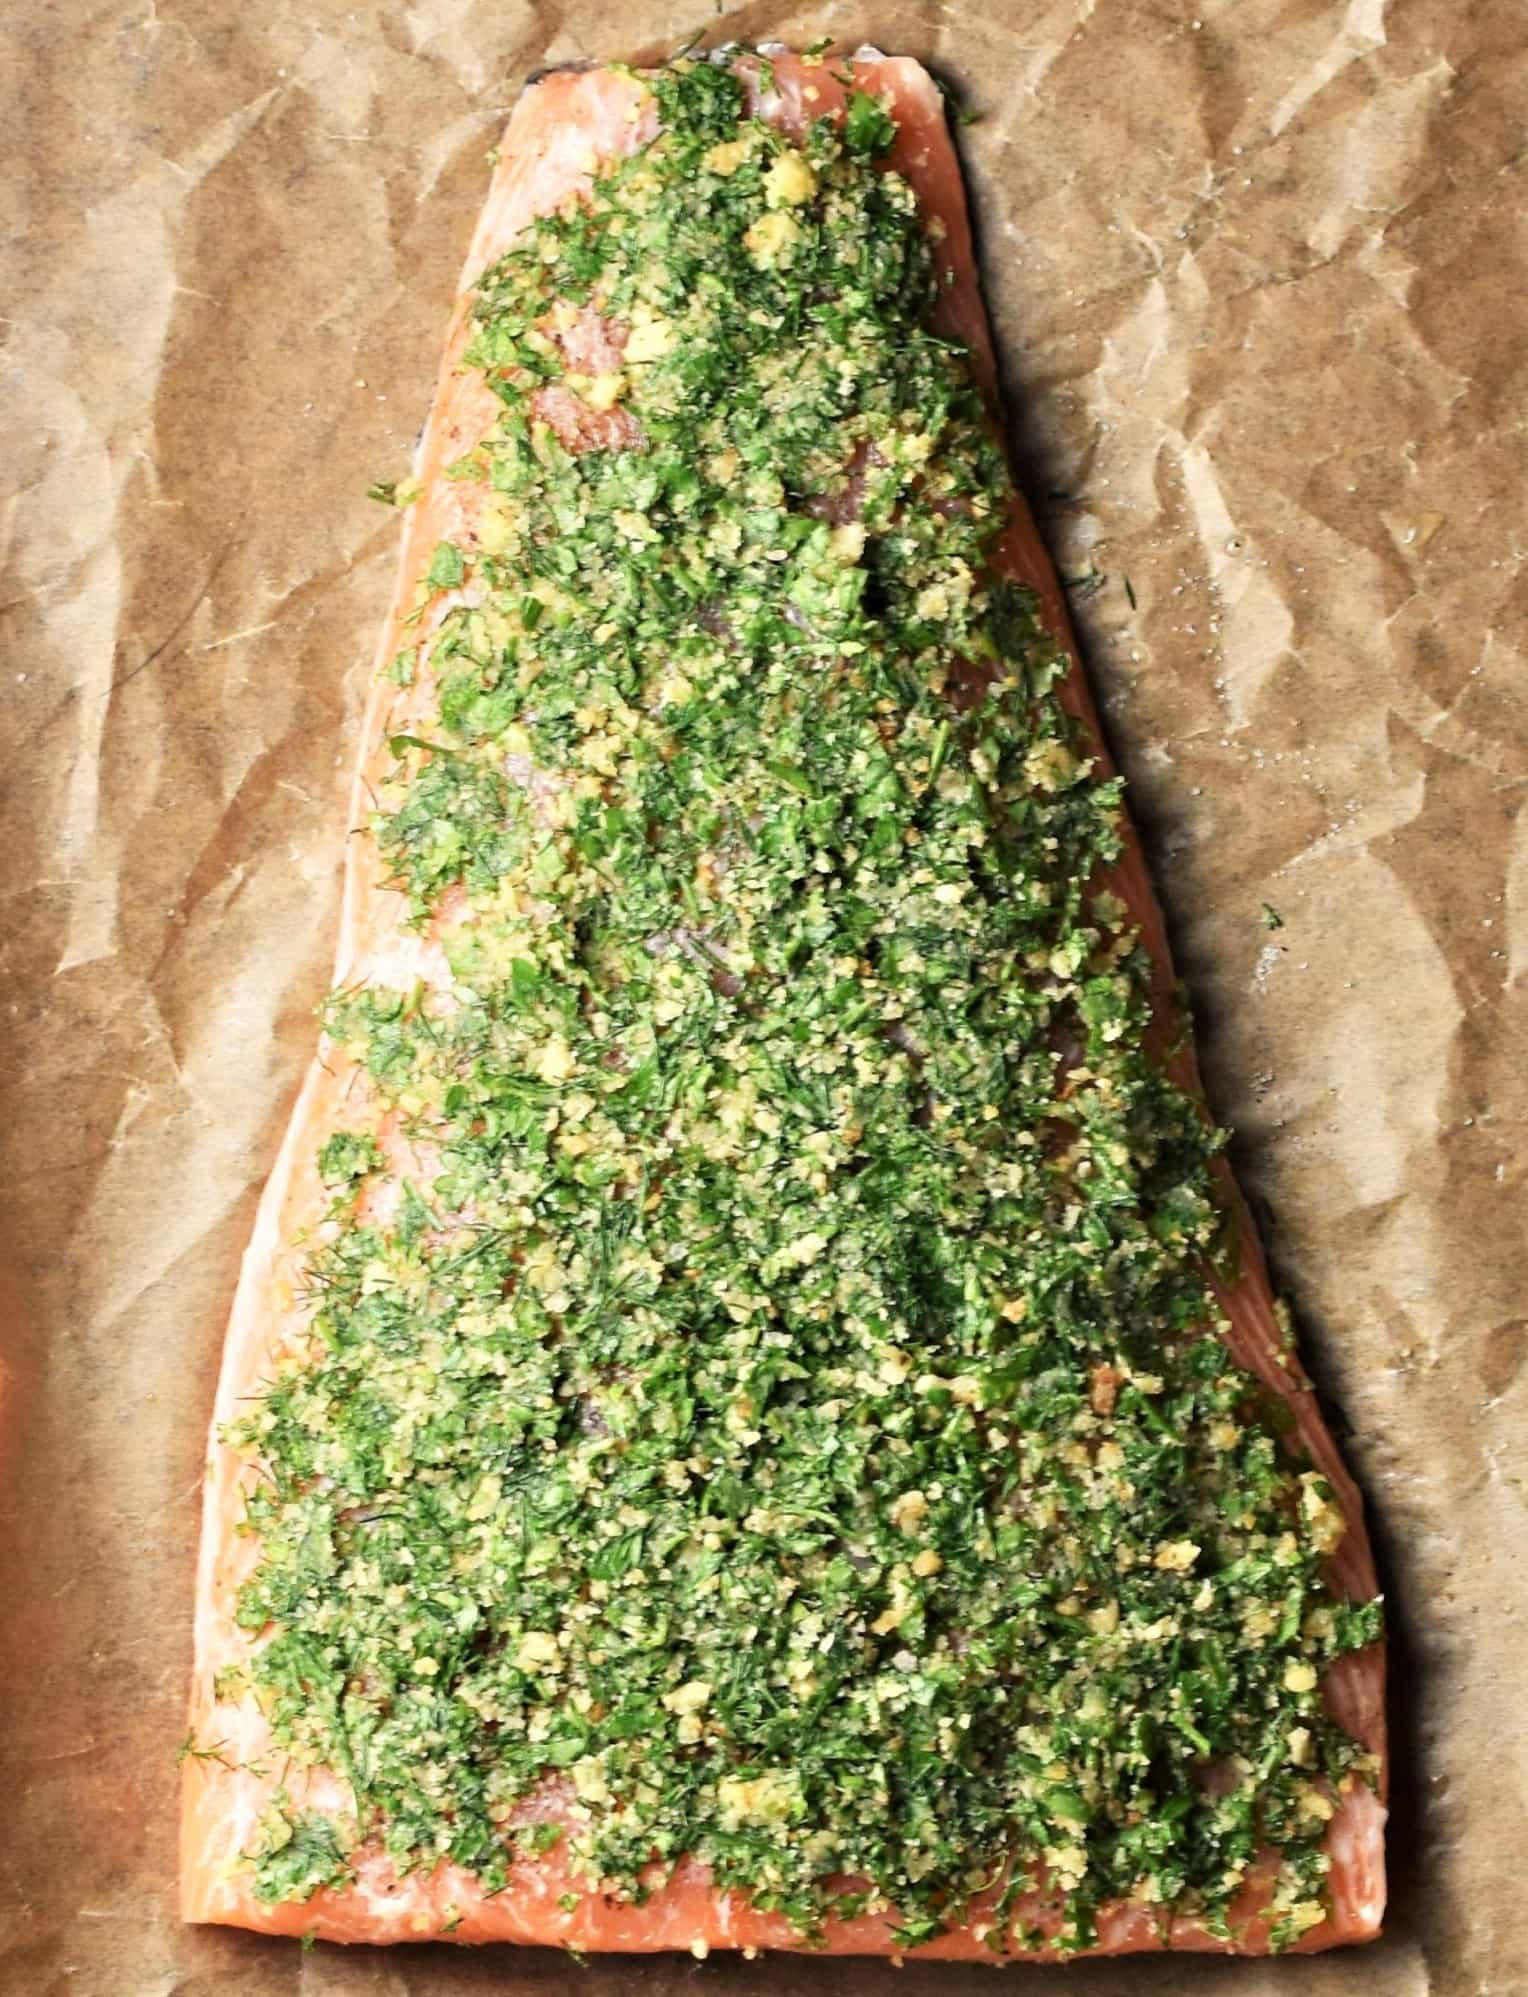 Salmon fillet topped with herb mixture on top of parchment.